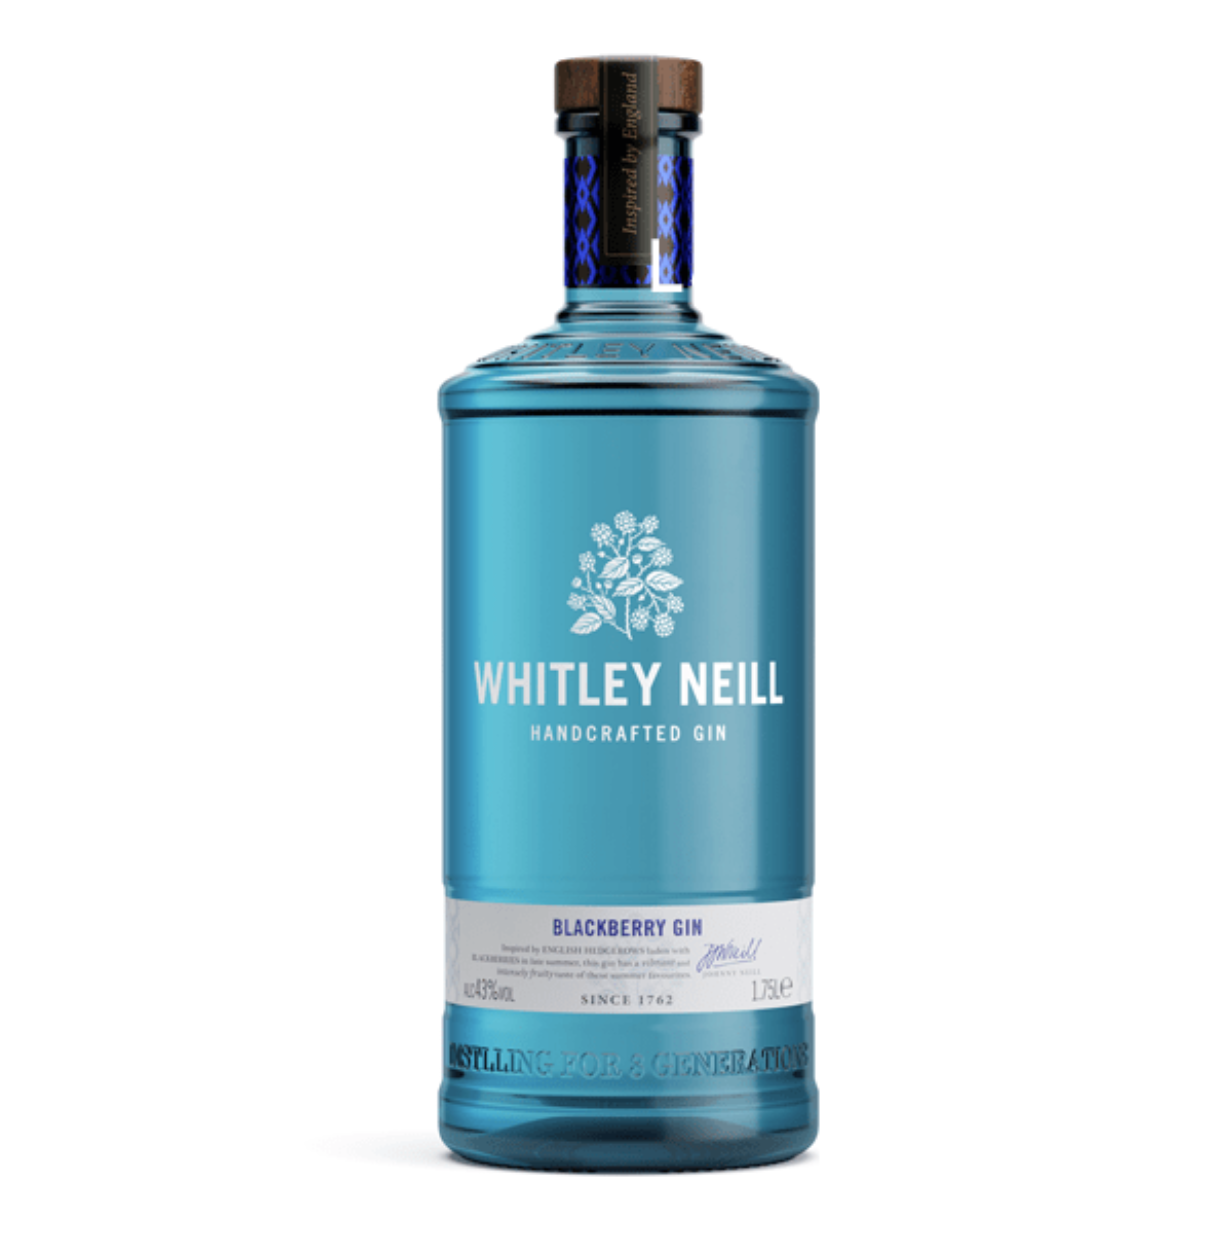 Whitley Neill Blackberry Gin Extra Large 1.75 Litre